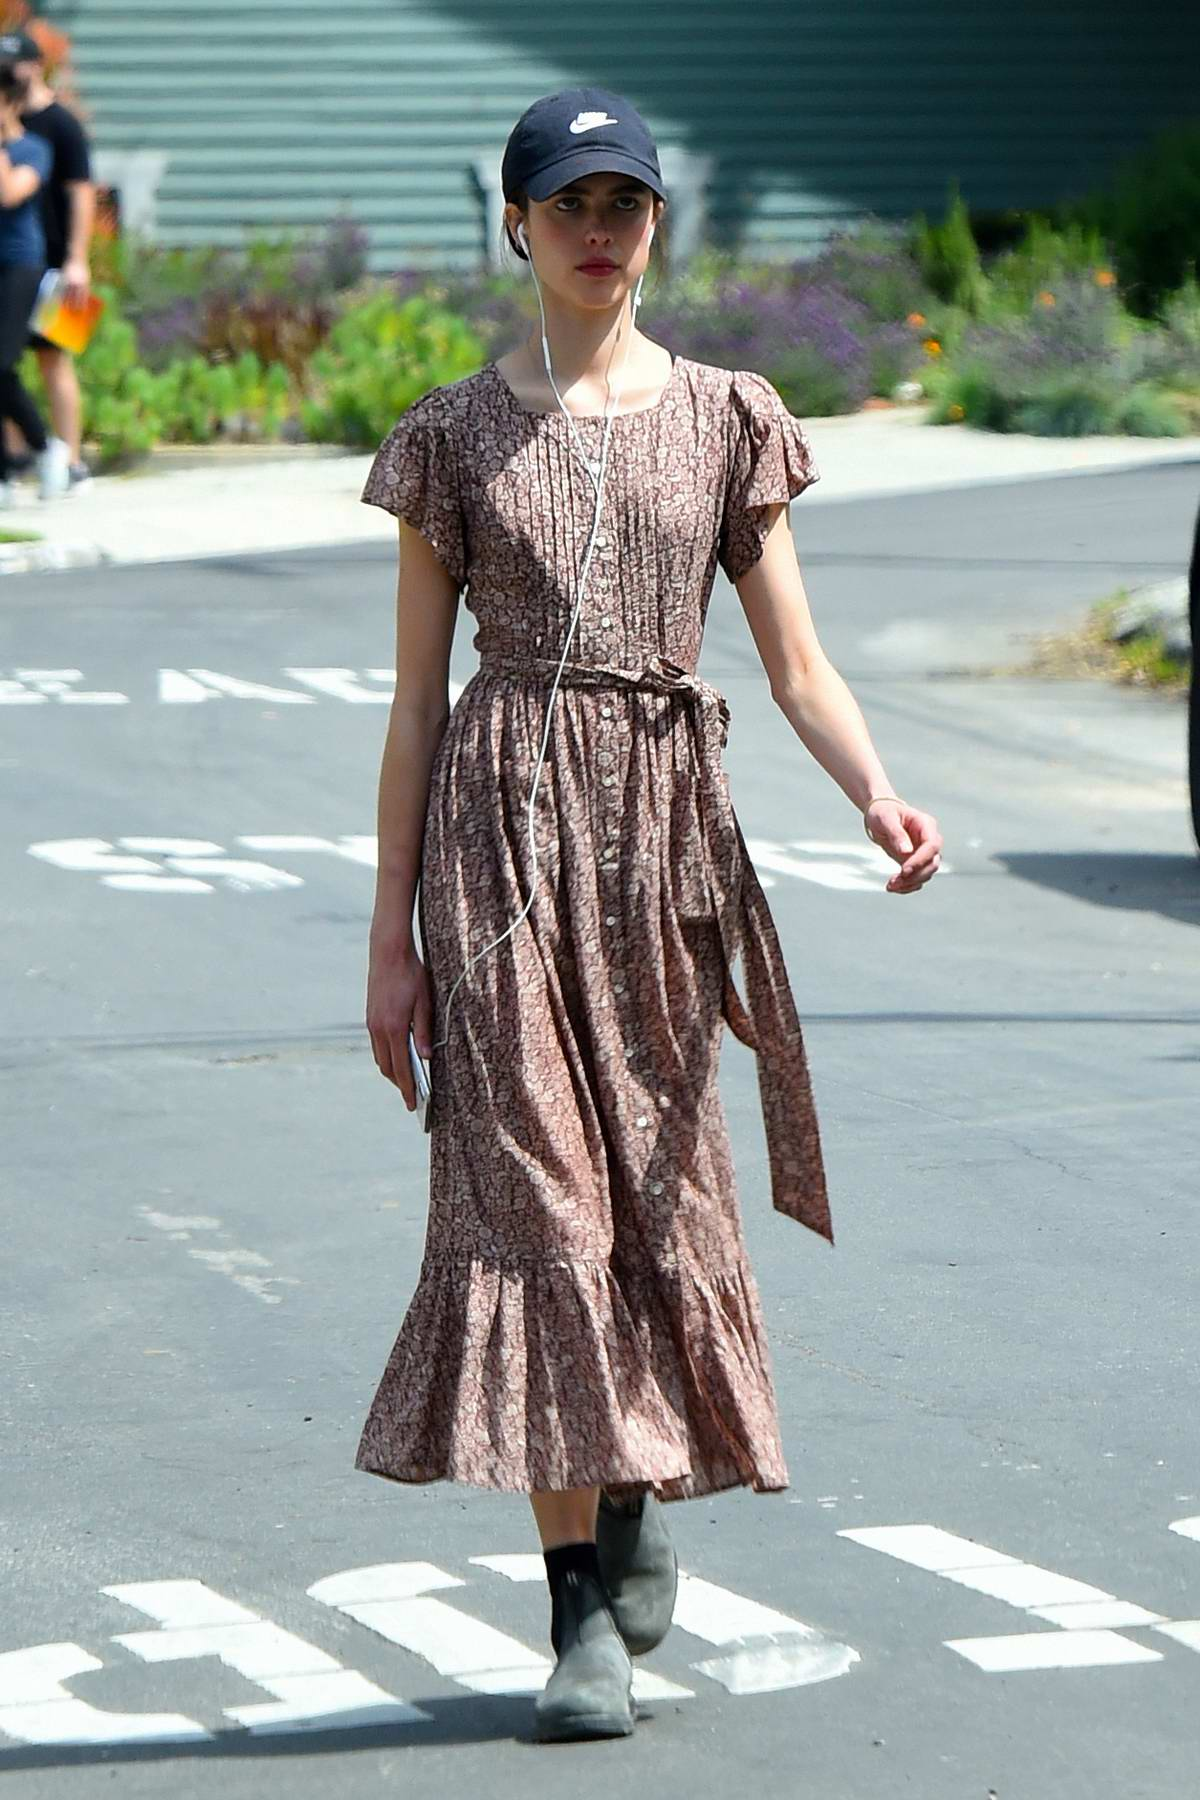 Margaret Qualley takes a break from quarantine to go for a walk in a floral print dress in Los Angeles